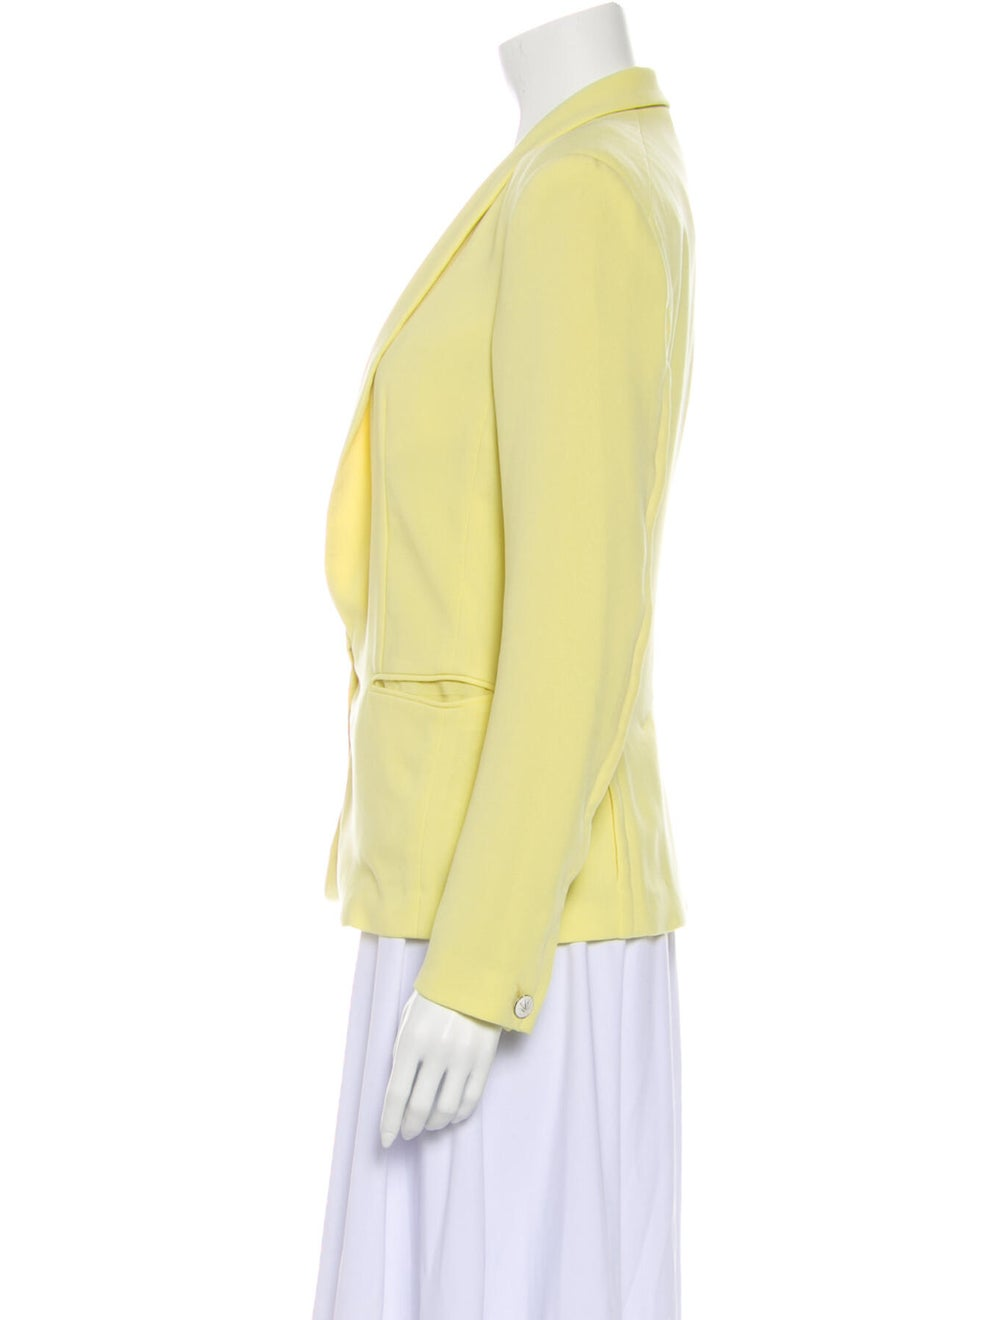 Rag & Bone Blazer Yellow - image 2